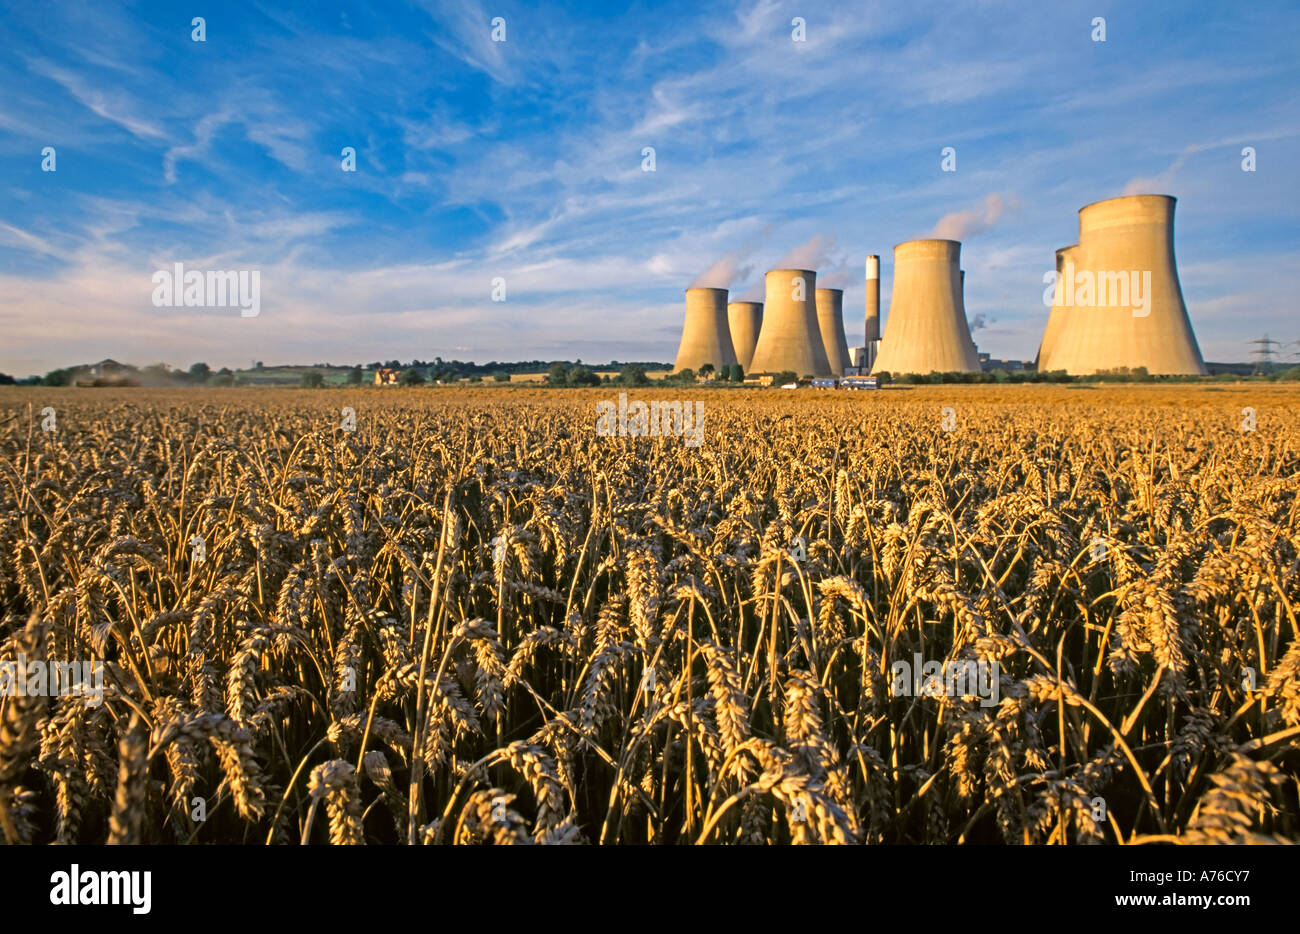 Amber coloured wheat fields with Ratcliffe on Sour coal fired power station behind in the late afternoon sun. Stock Photo